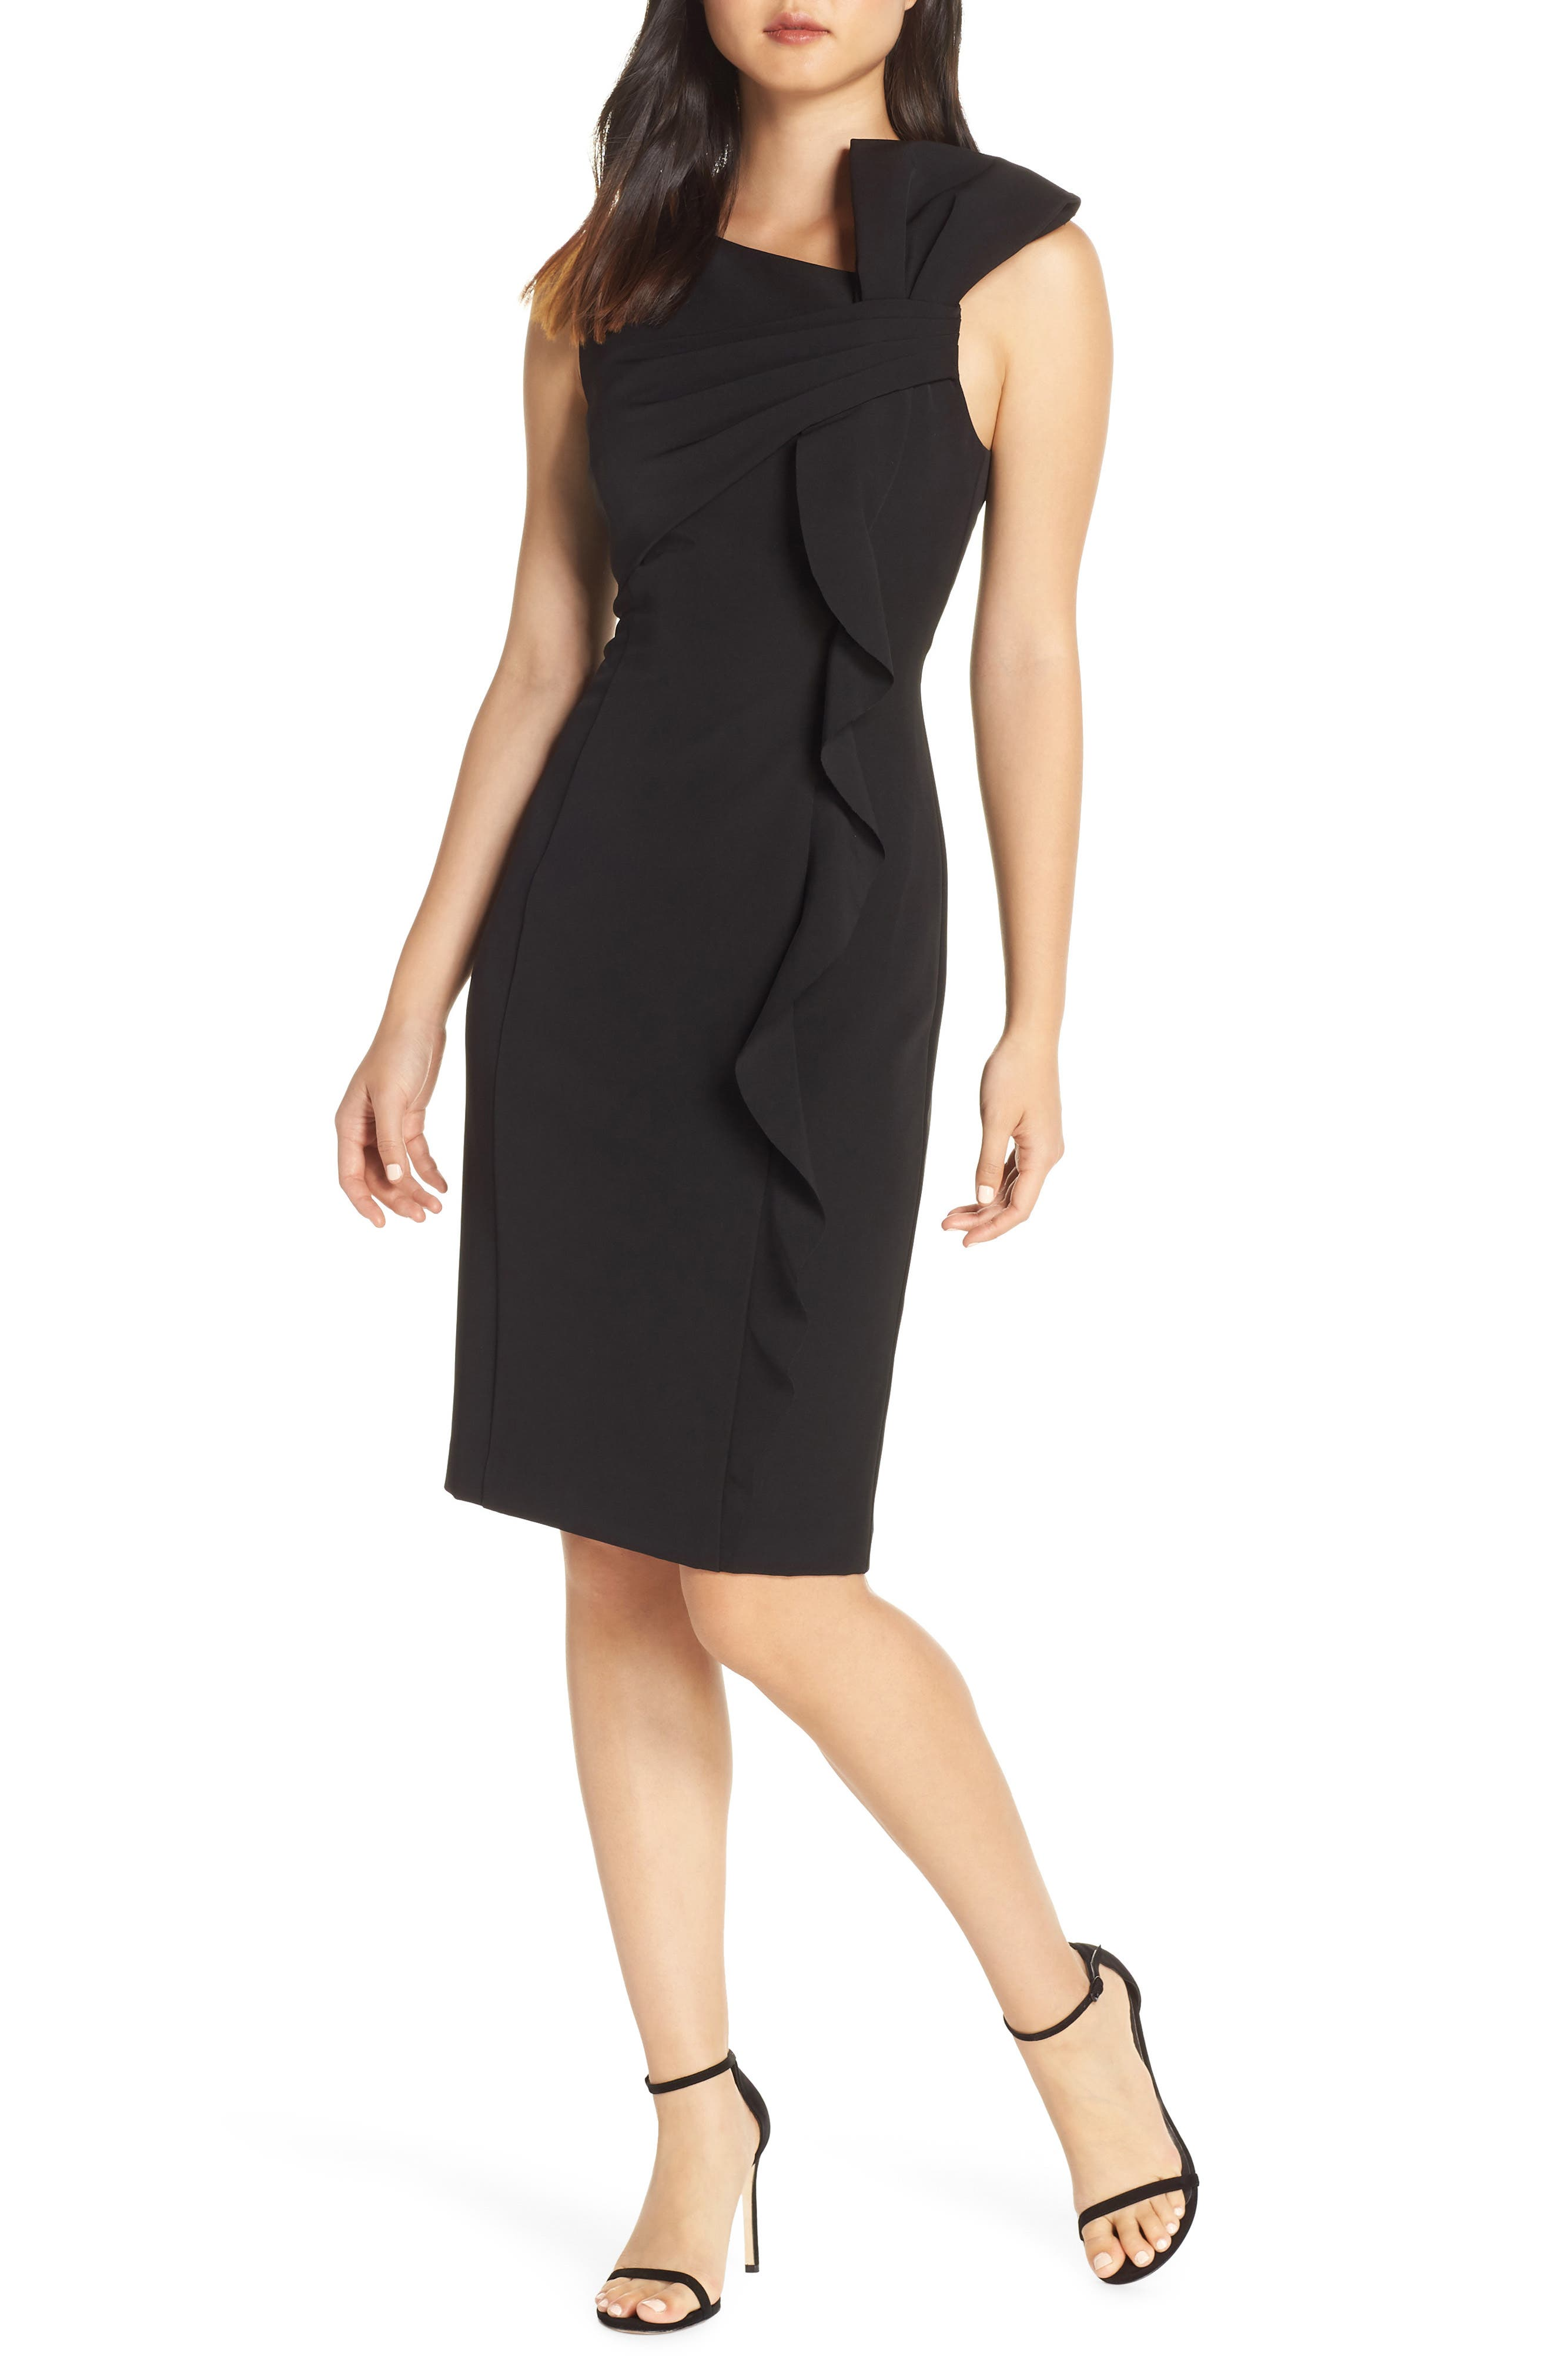 Vince Camuto Desired Stretch Crepe Cocktail Sheath, Black